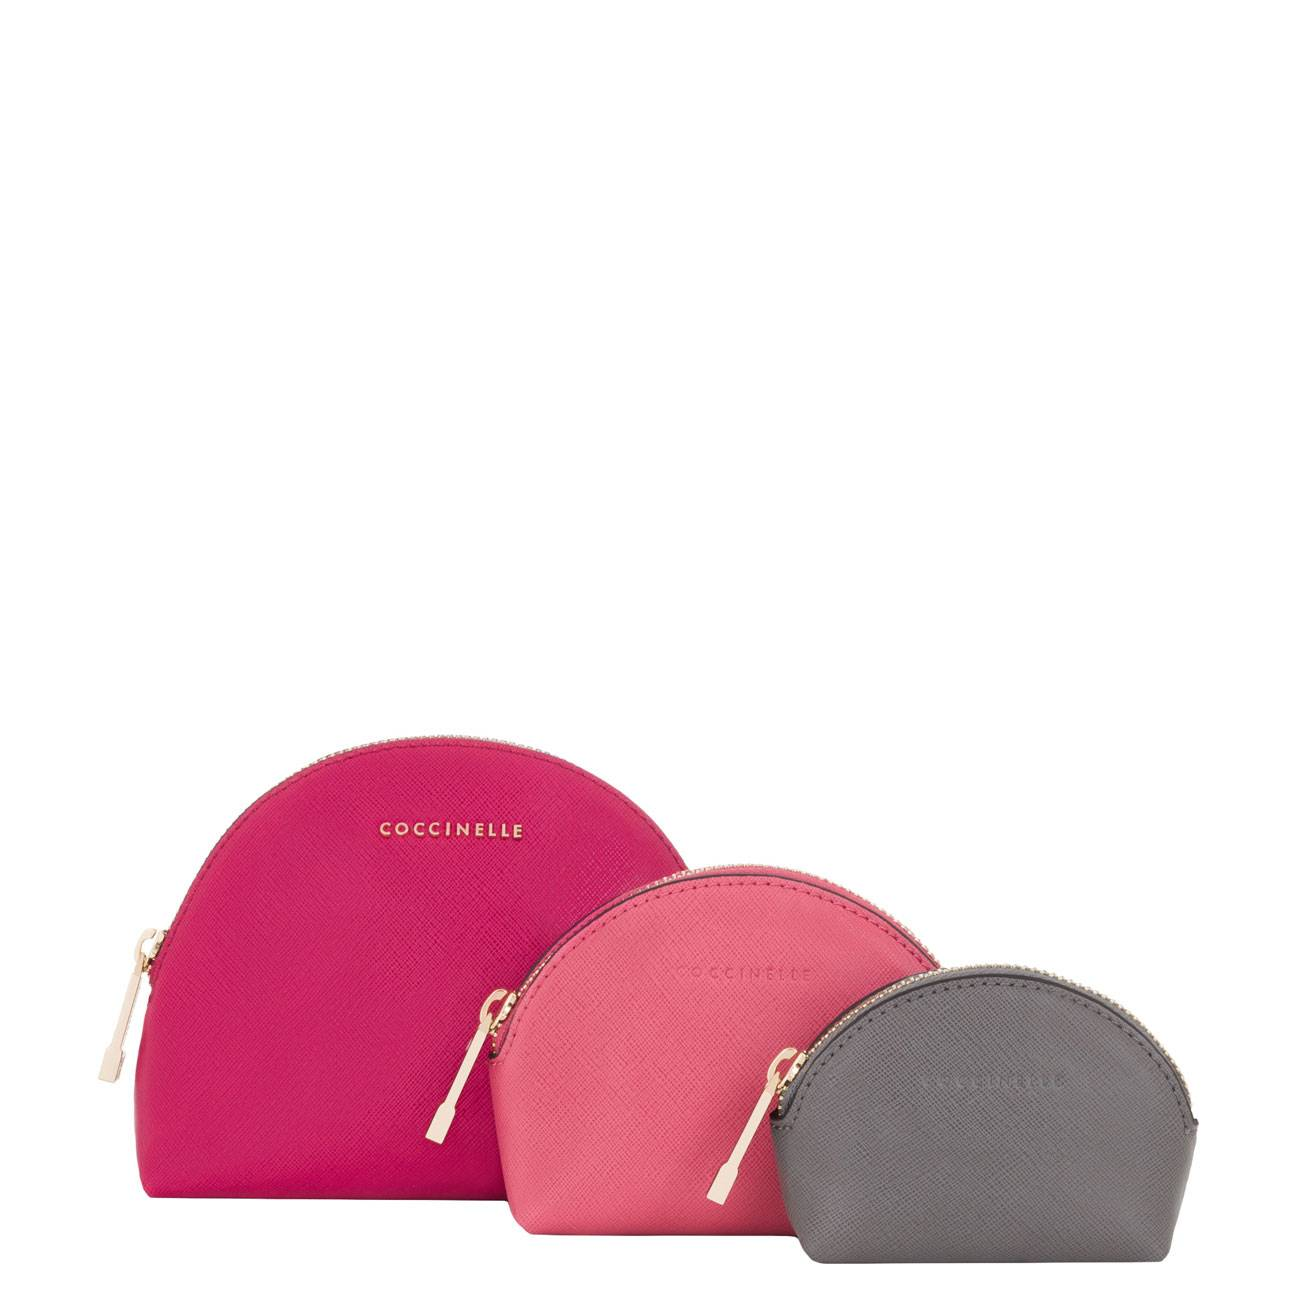 COCCINELLE COSMETIC BAG TROUSS